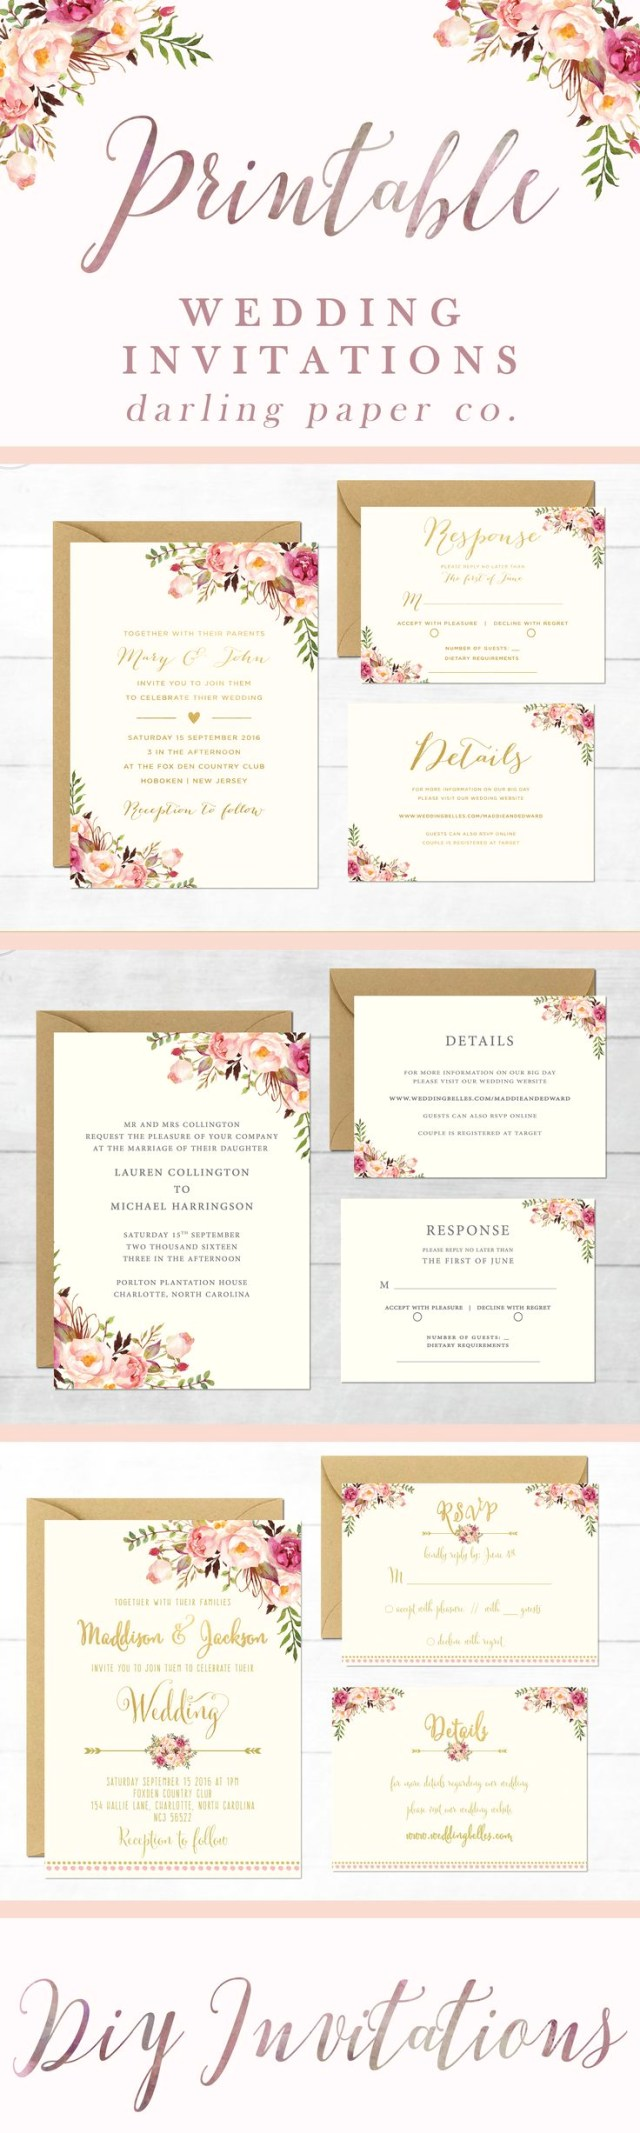 Printable Wedding Invitations Templates Printable Wedding Cards Elegant 215 Best Wedding Invitation